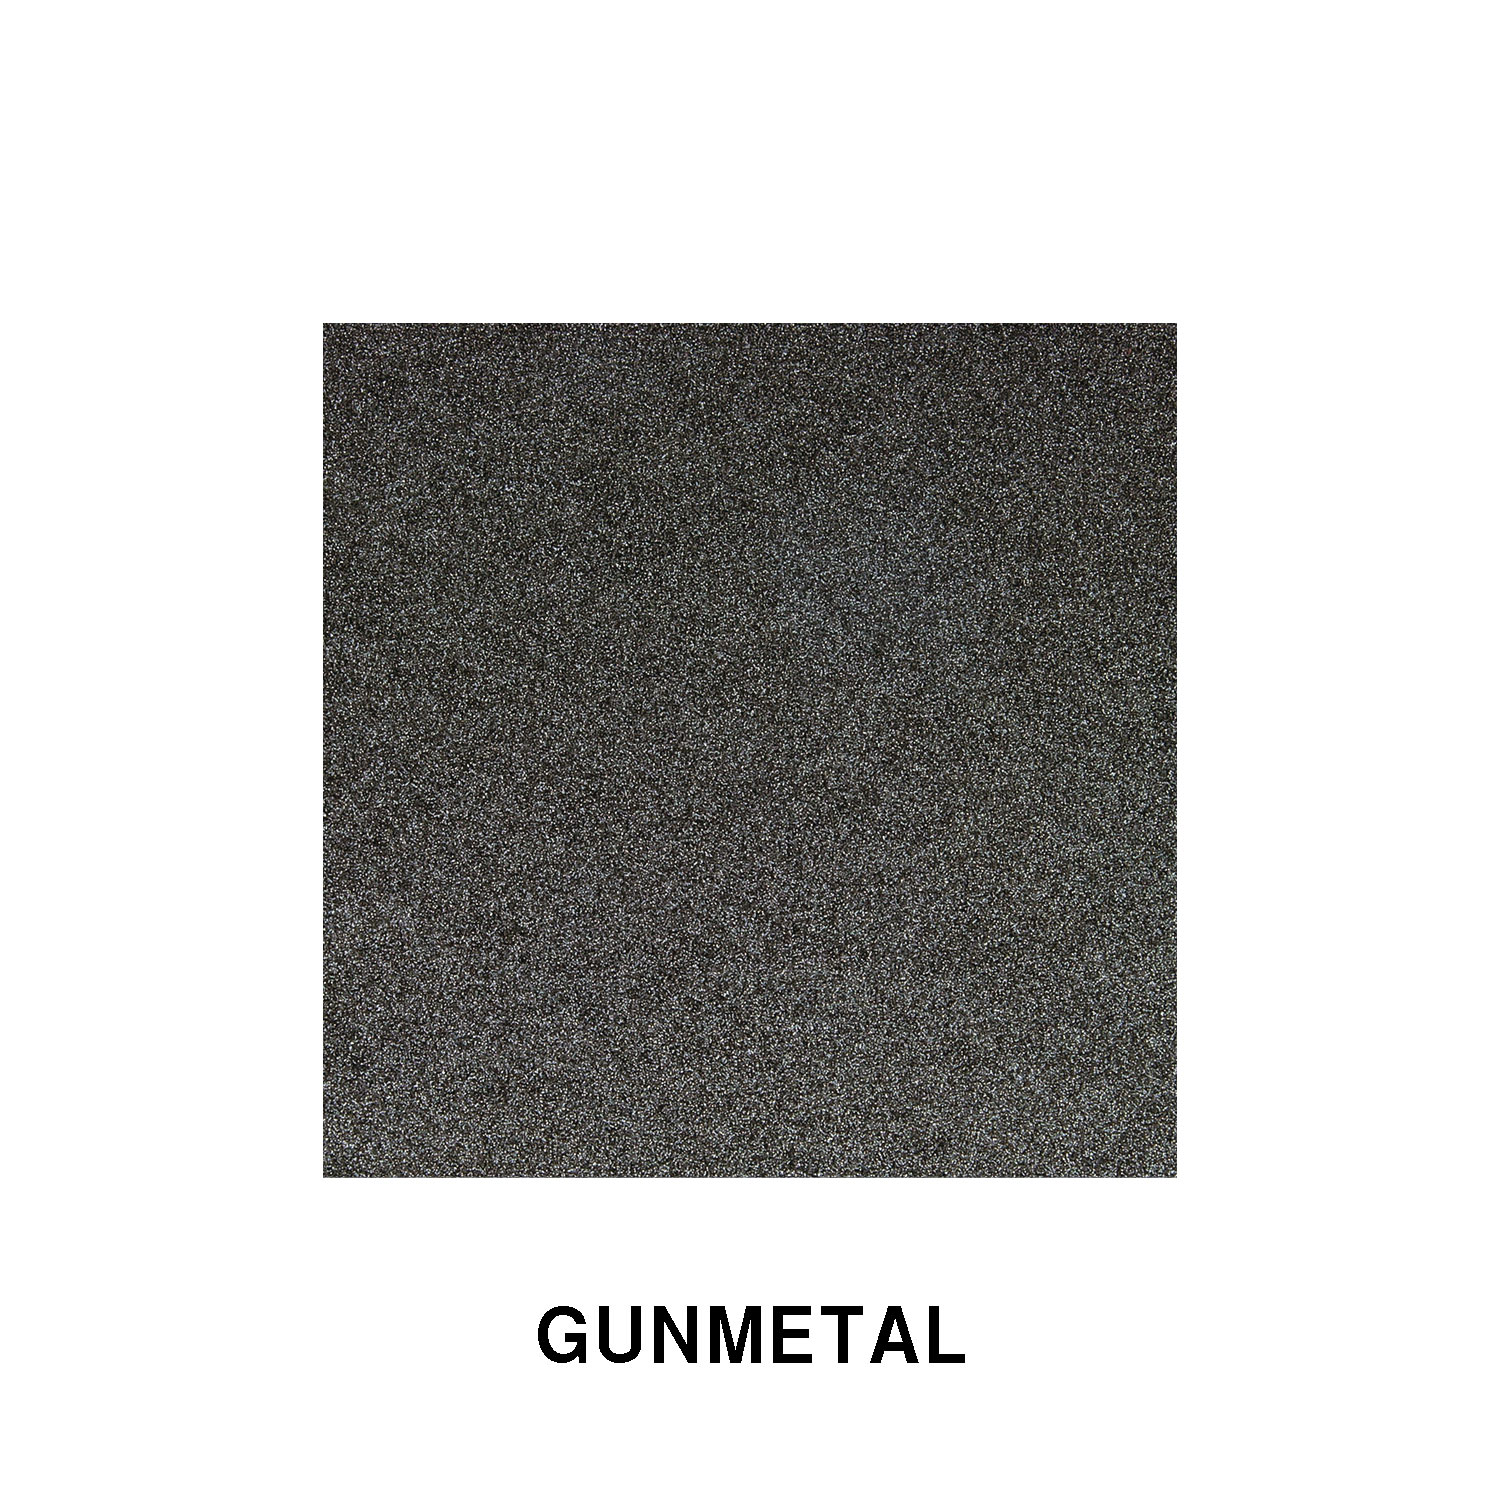 Gunmetal Metallic Fiberglass Finish